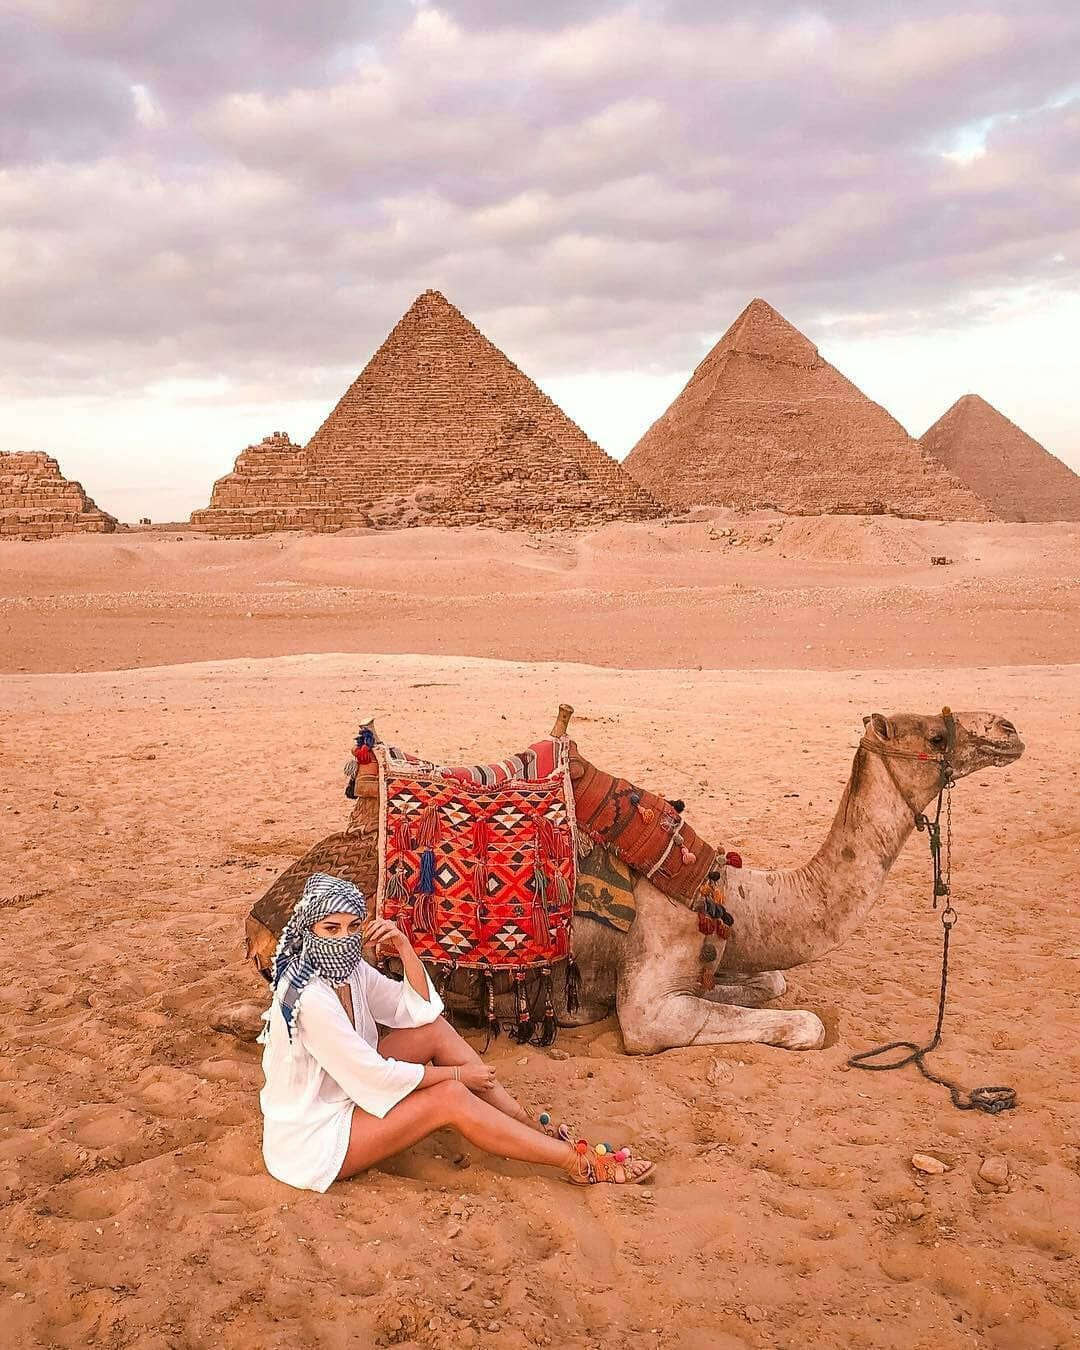 2 Day Trips from Hurghada to Cairo by Car #historyoftheworld